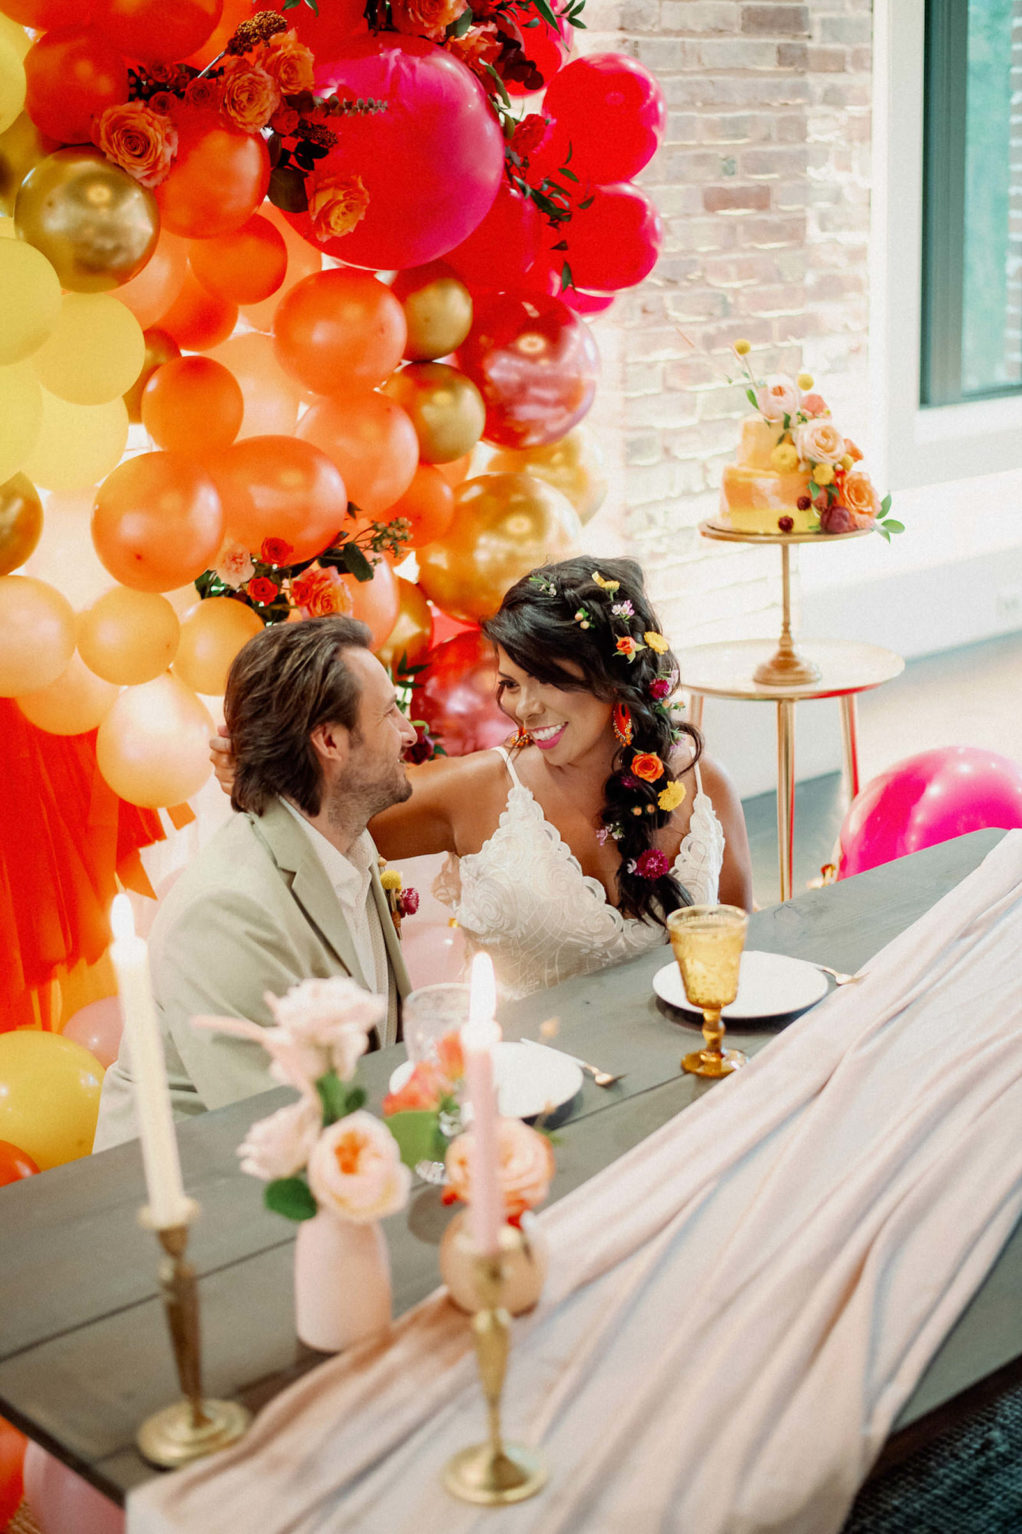 Whimsical Bride with Braided Hair and Flowers and Groom Sitting at Low Picnic Style Table with Neutral Drape Linen, Blush Pink Roses, Tall Candlesticks, Yellow Vintage Glassware, Orange, Yellow, Gold, Pink and Red Balloon Backdrop   Tampa Bay Wedding Photographer Dewitt for Love   Wedding Linen Rentals Kate Ryan Event Rentals   St. Pete Modern Industrial Wedding Venue Red Mesa Events